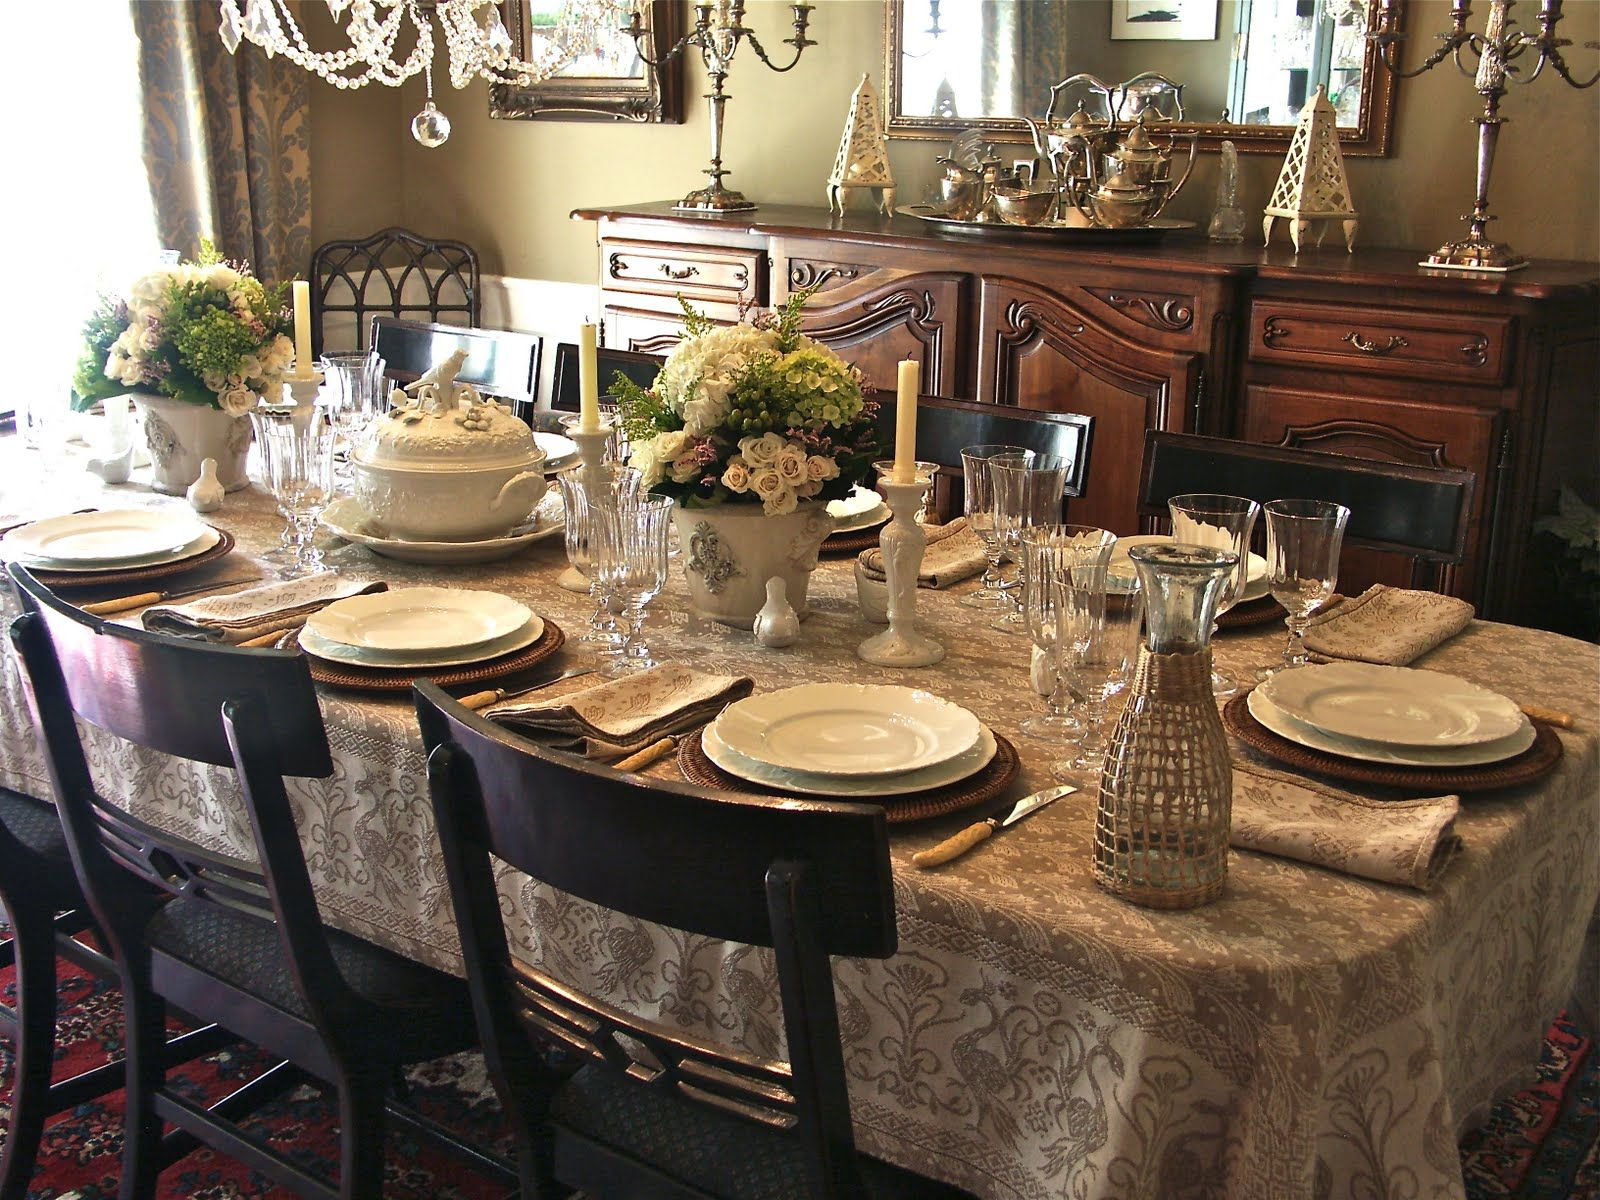 Tuscany Tablecloth Patterns Google Search Pretty Tables Table